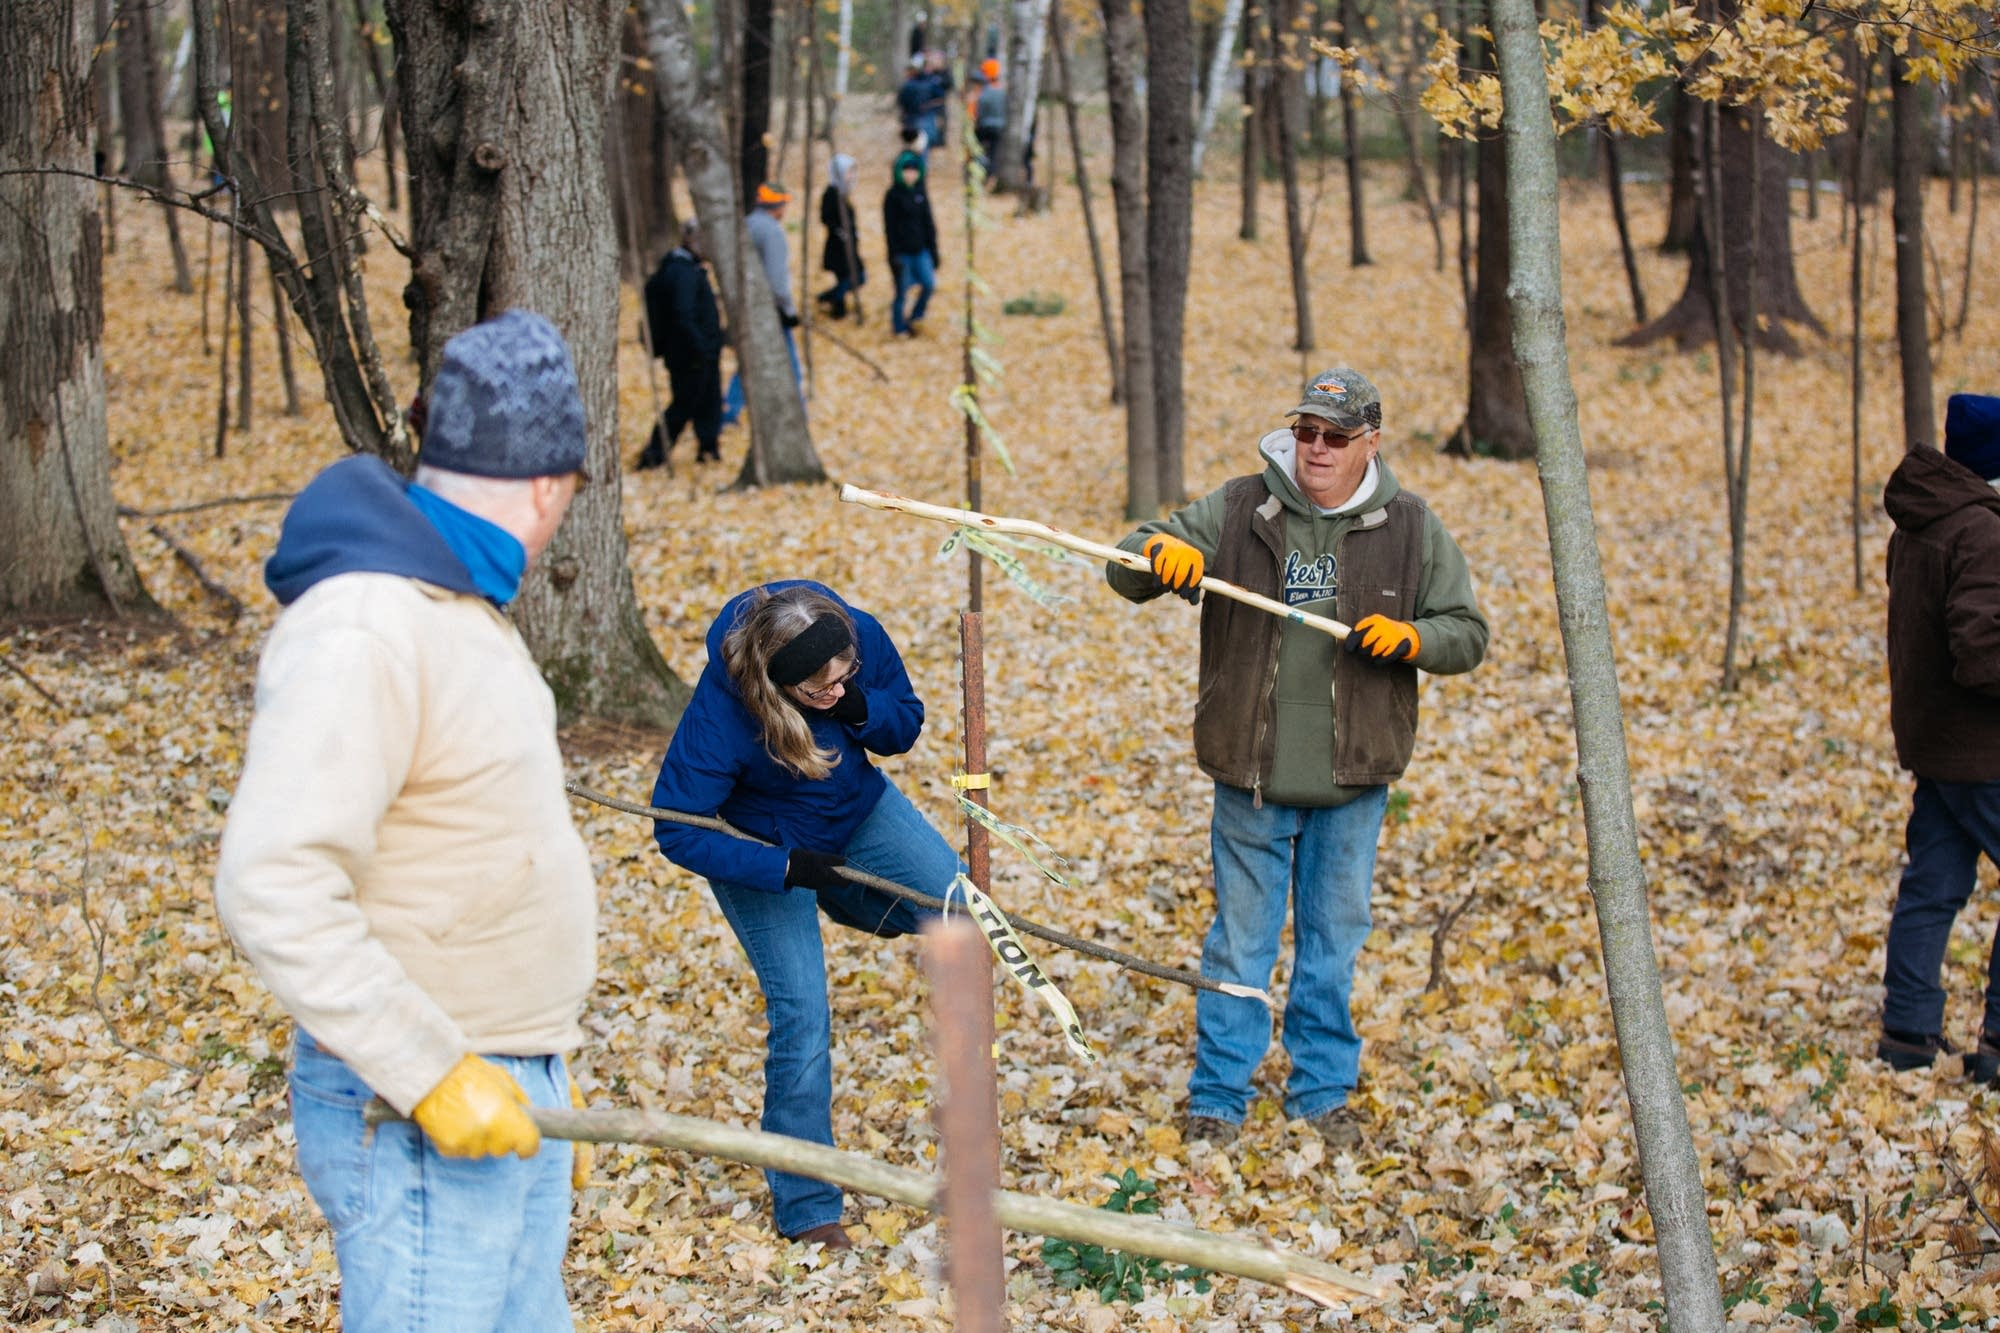 Volunteers use sticks and walking poles to help each other.